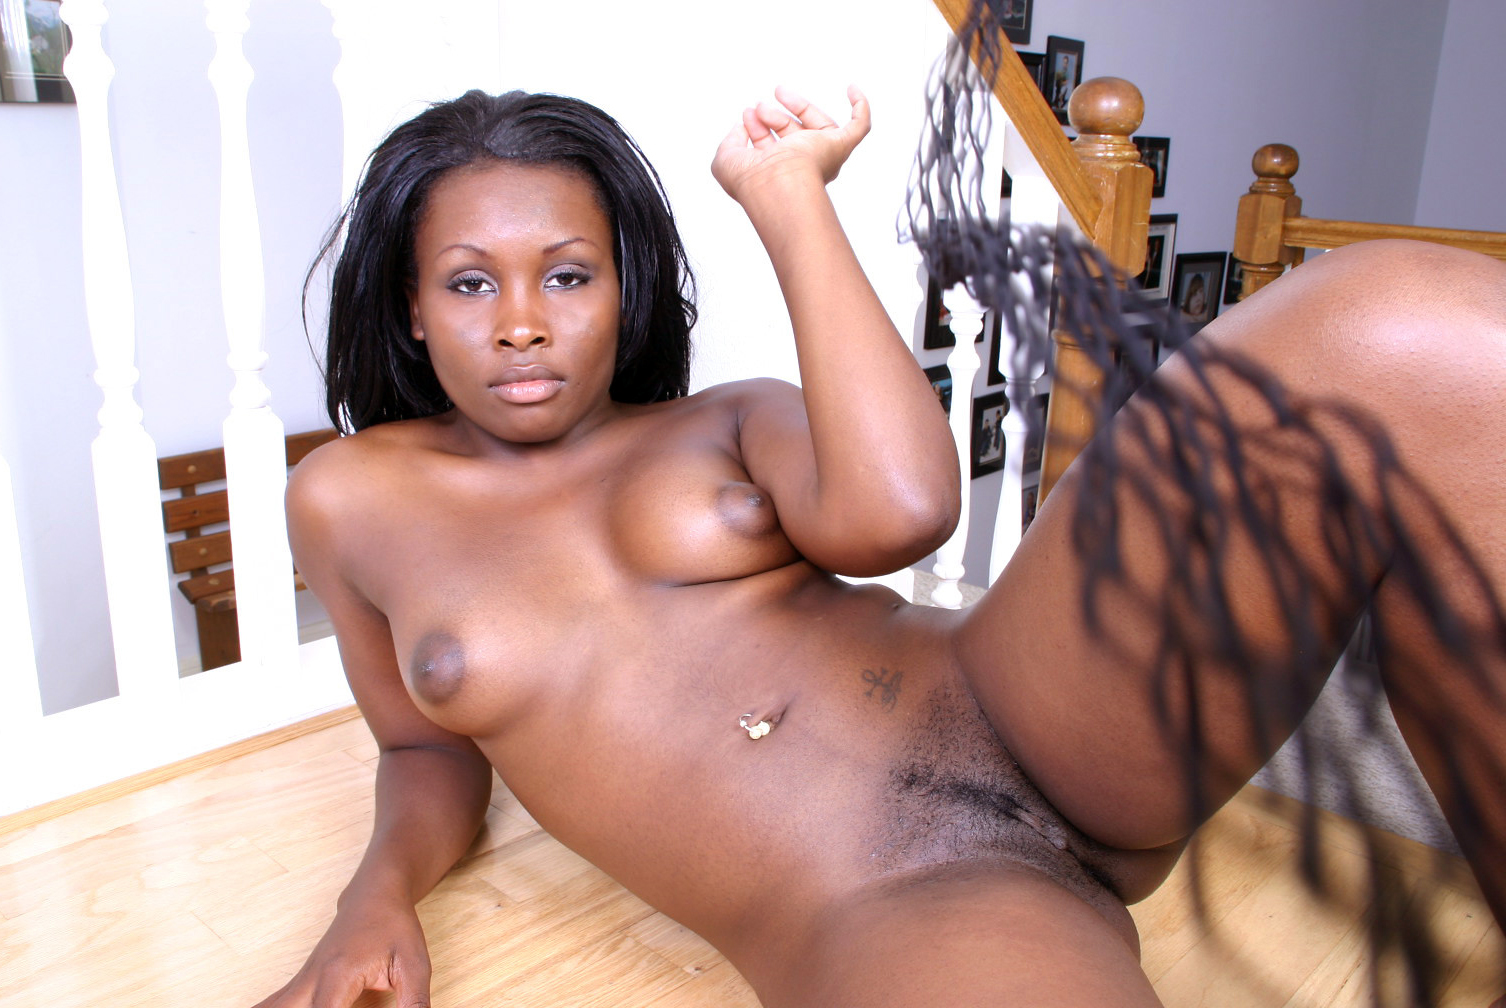 Ebony milf happy for shows your sex-slit. Picture #2.